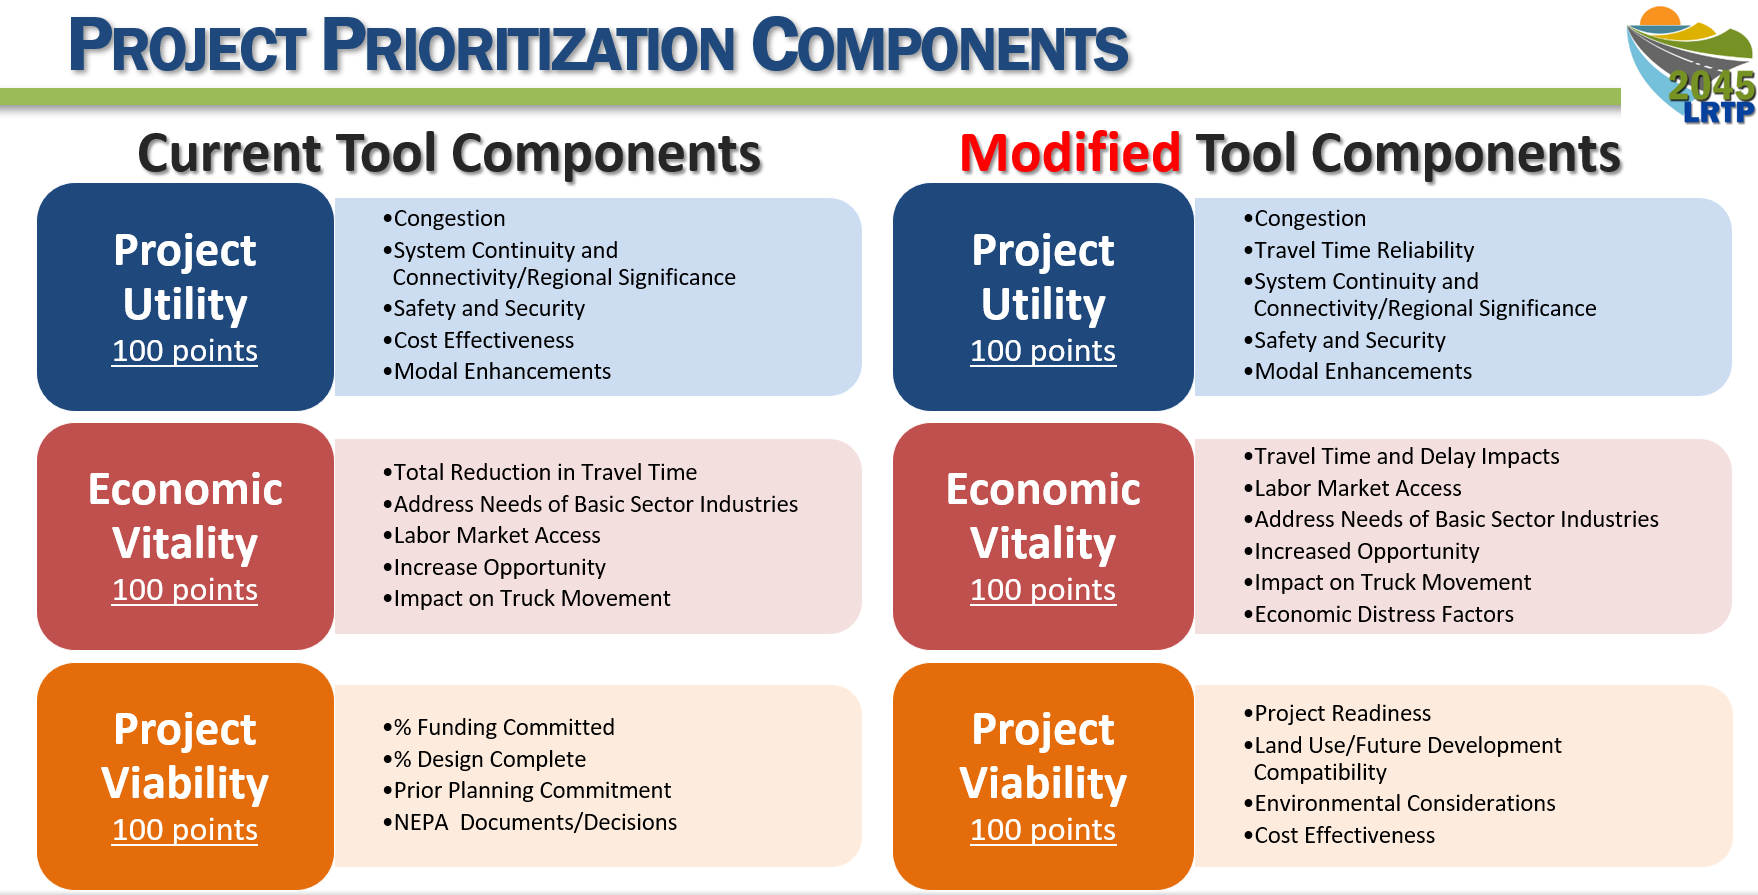 Table Graphic Outling the Project Prioritization Components